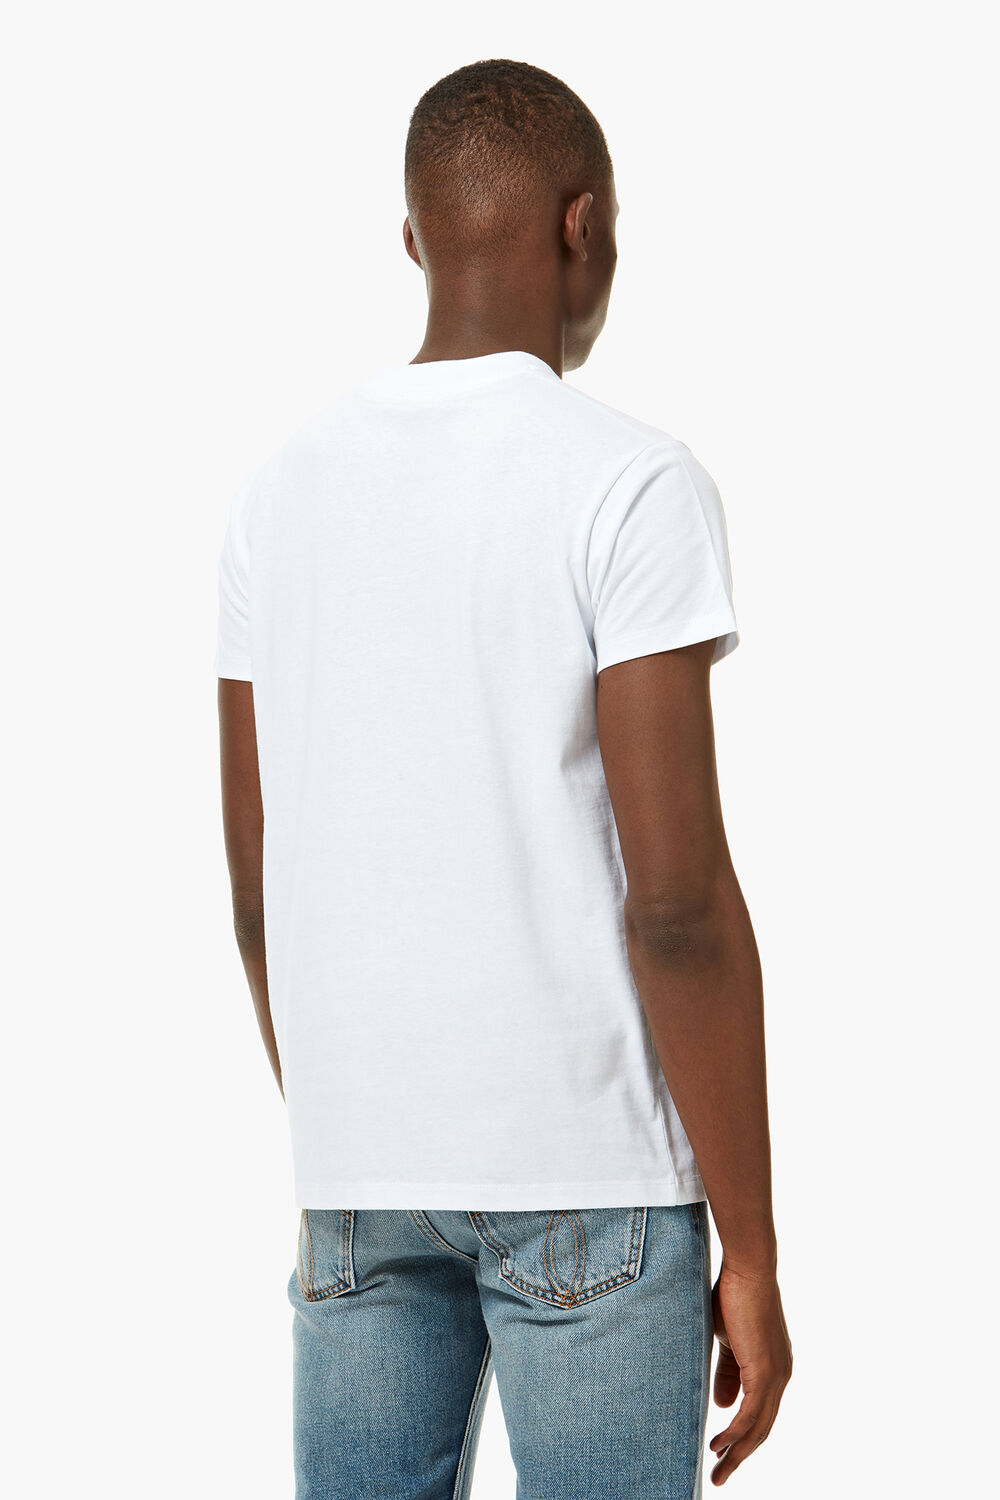 Martini Logo T-Shirt White